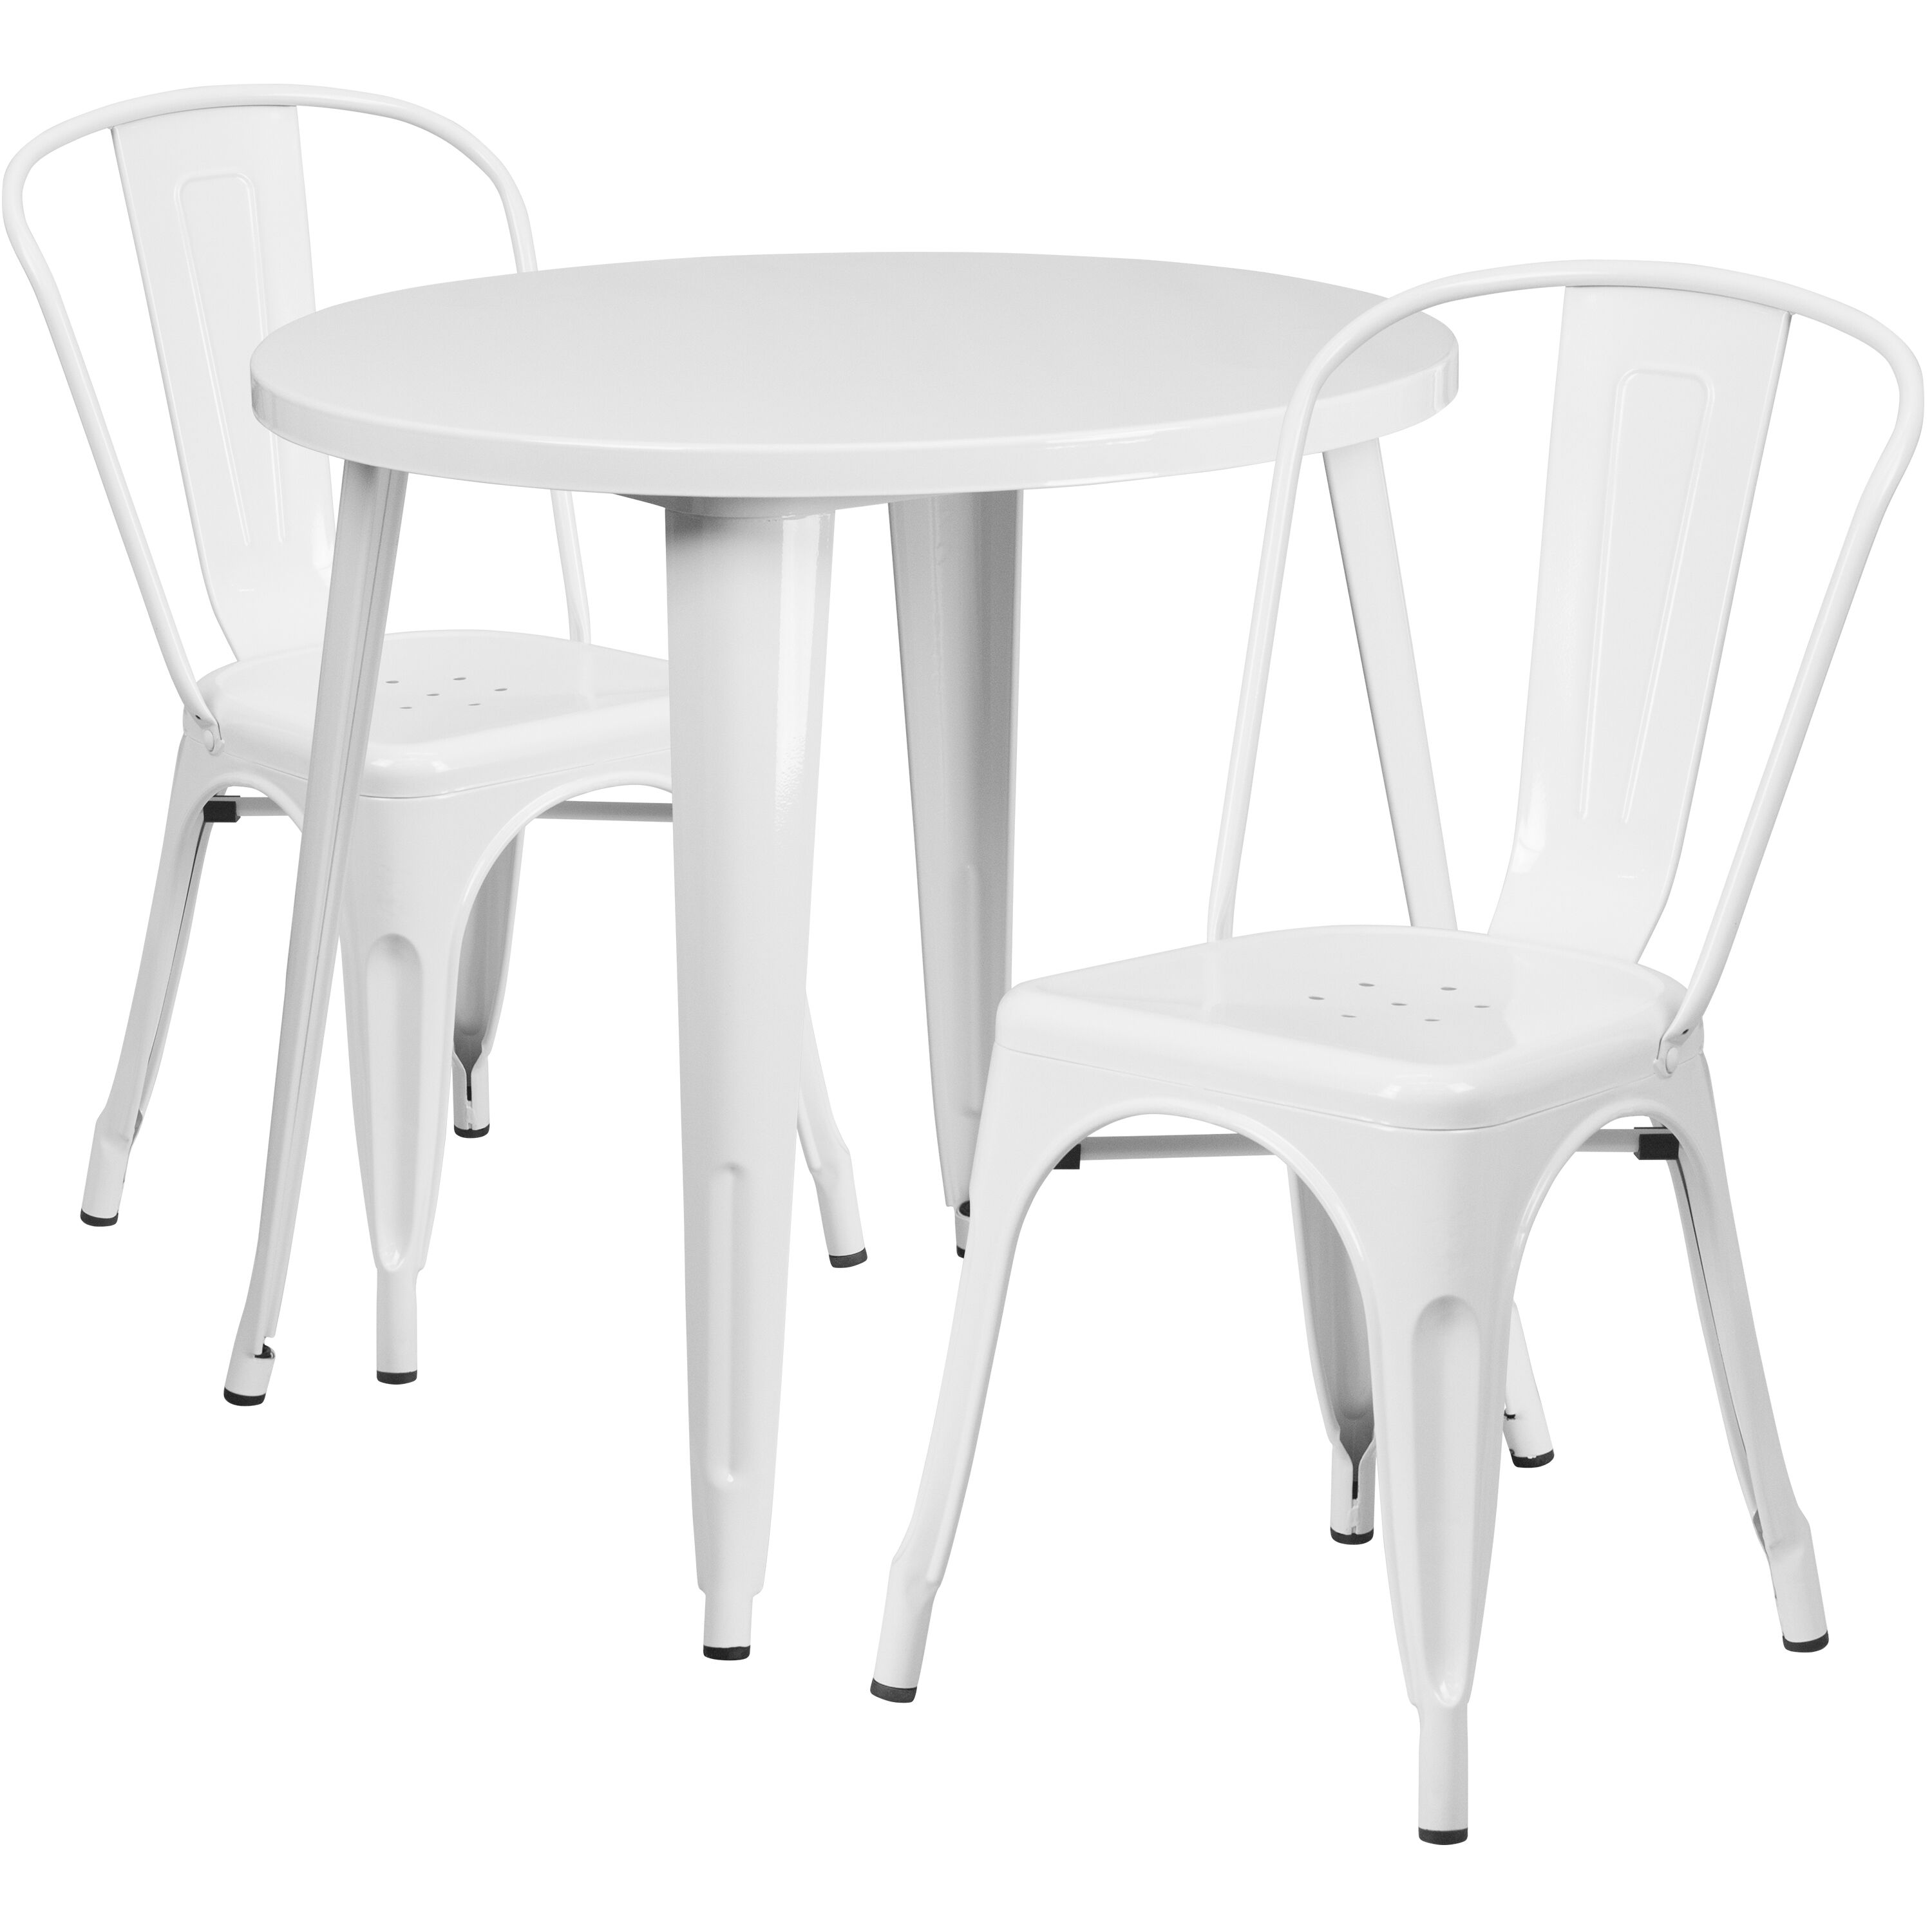 cafe chairs metal for porch 30rd white set ch 51090th 2 18cafe wh gg stackchairs4less com images